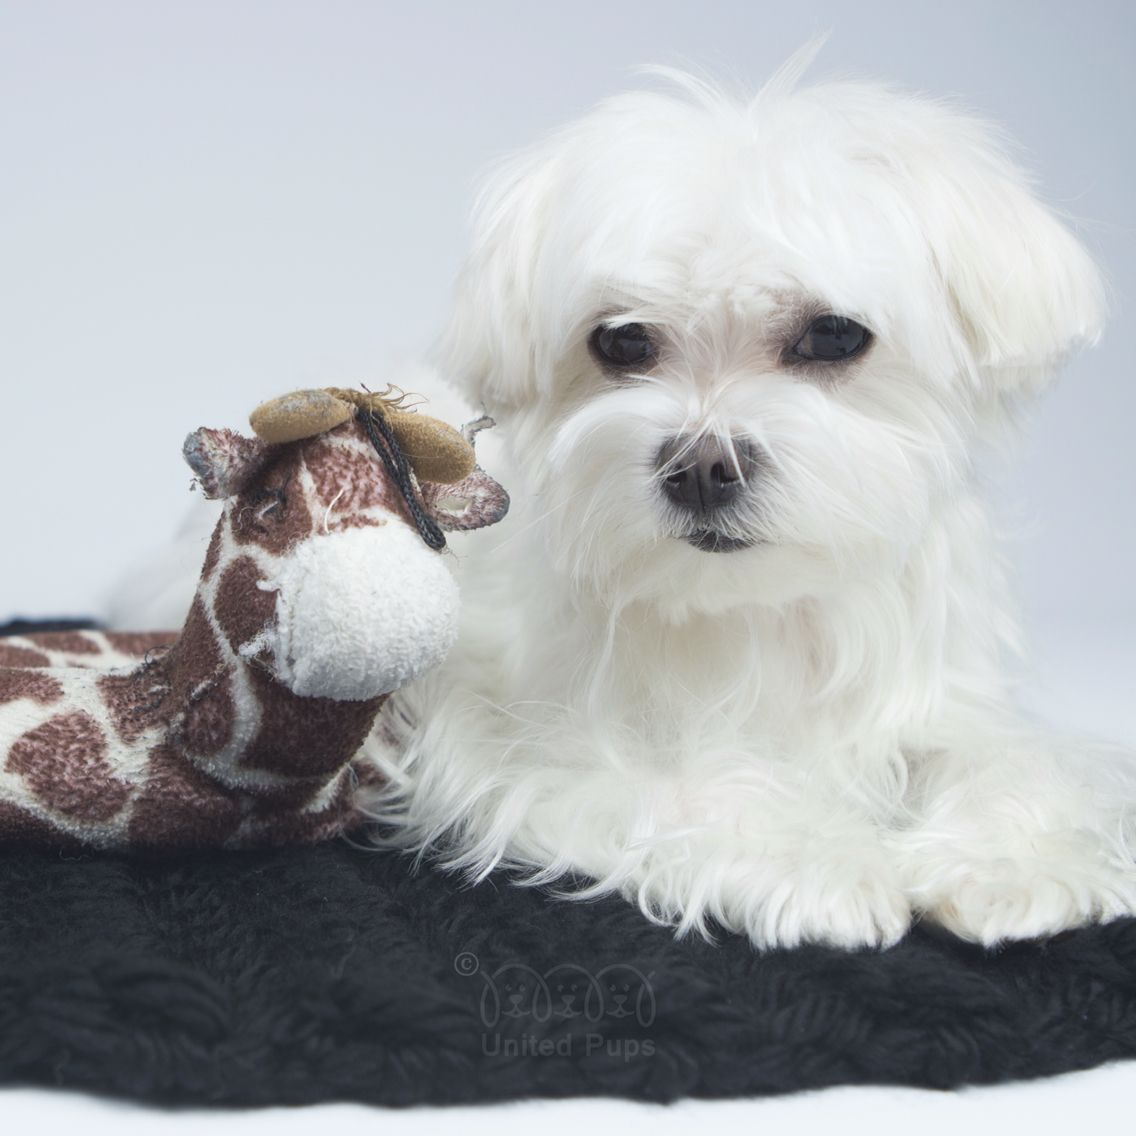 I don't understand why mom keeps looking for a replacement giraffe for me! I know this one is gross and stinky but...this is my forever love! #foreverlove #toys #arodwang #maltese